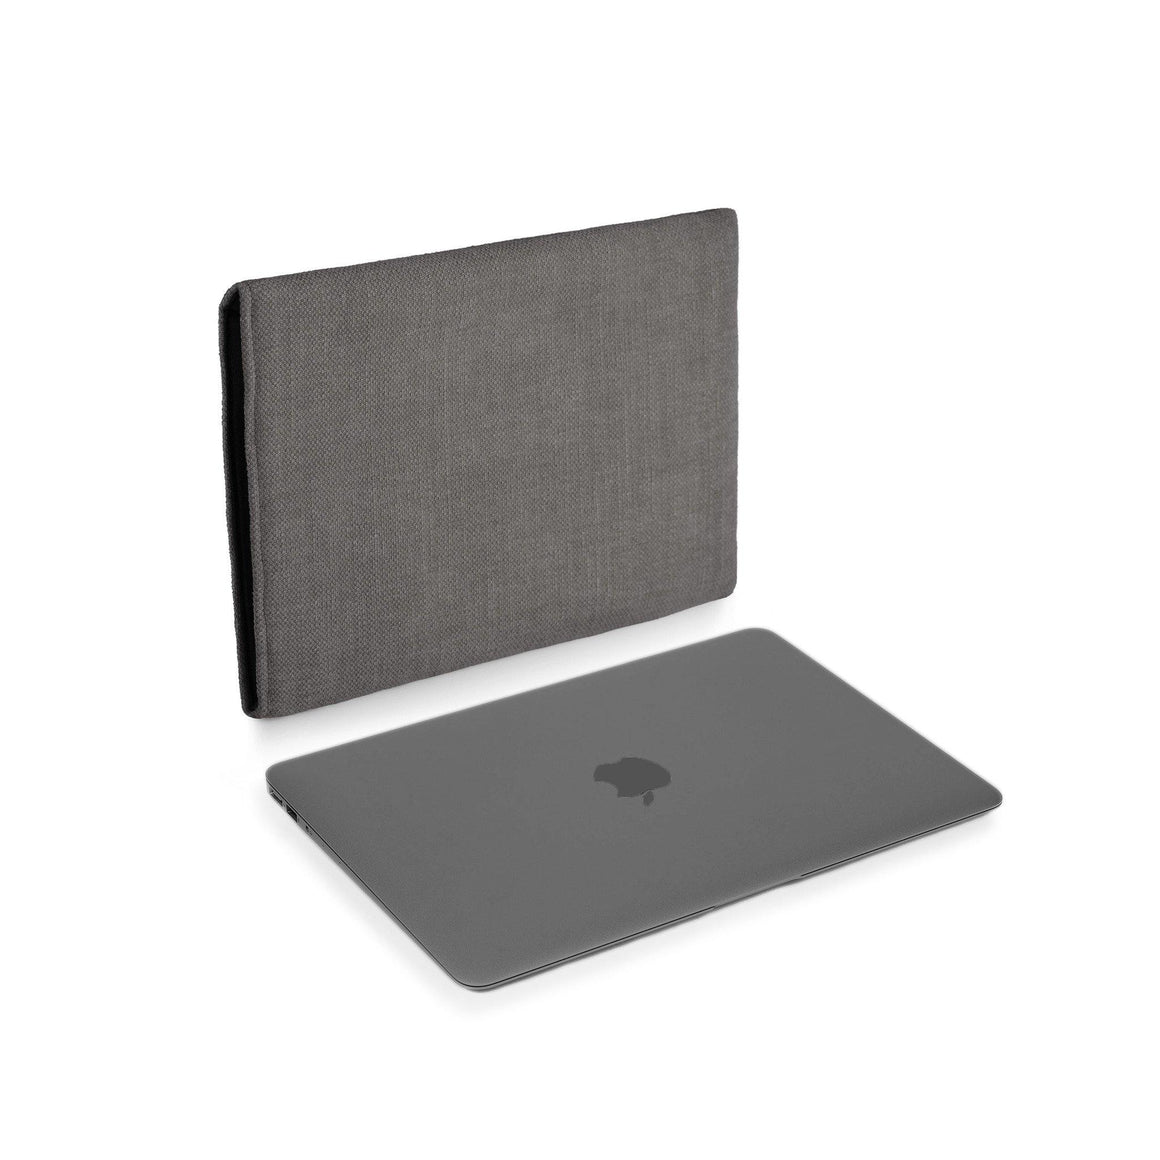 MacBook 12 Space Grey Cover Charcoal - Wrappers UK